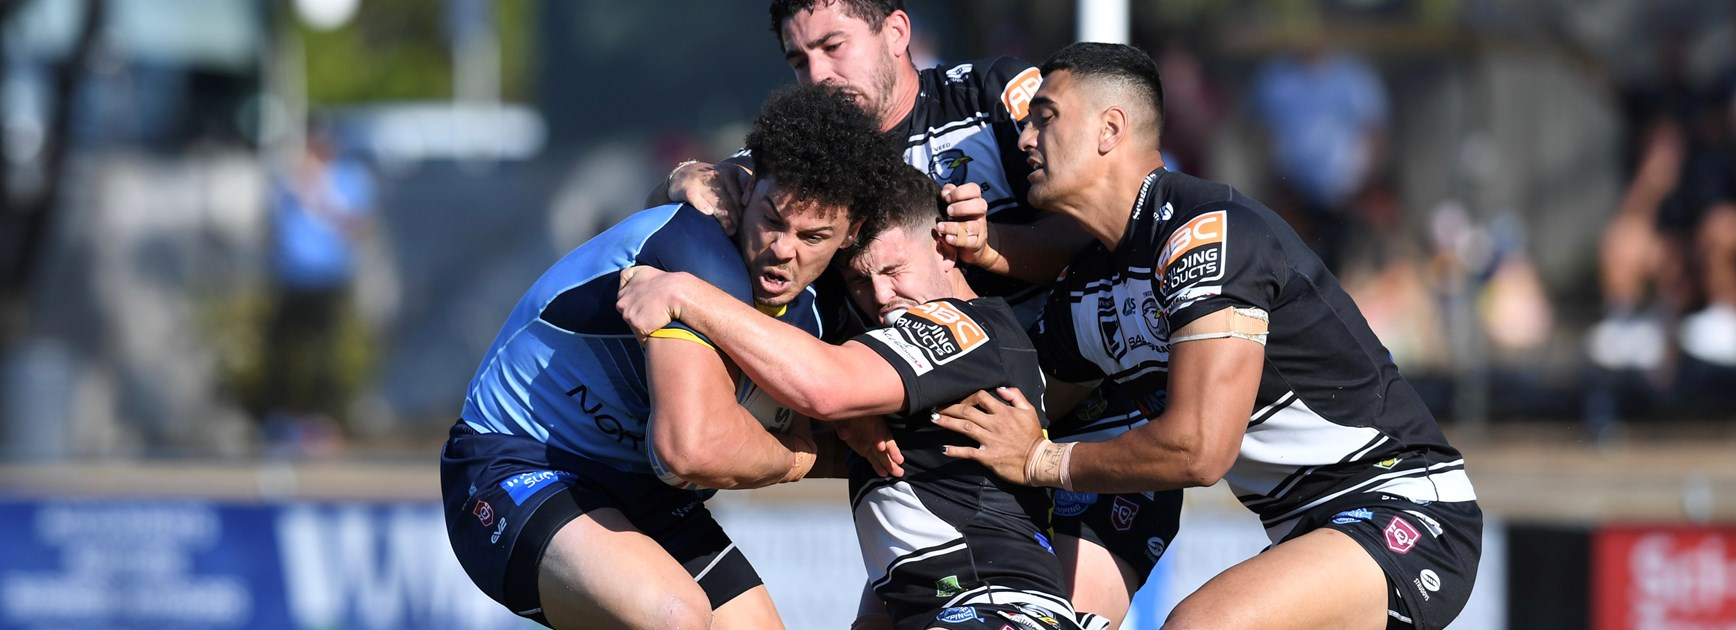 Late try sees Norths do just enough to down Tweed